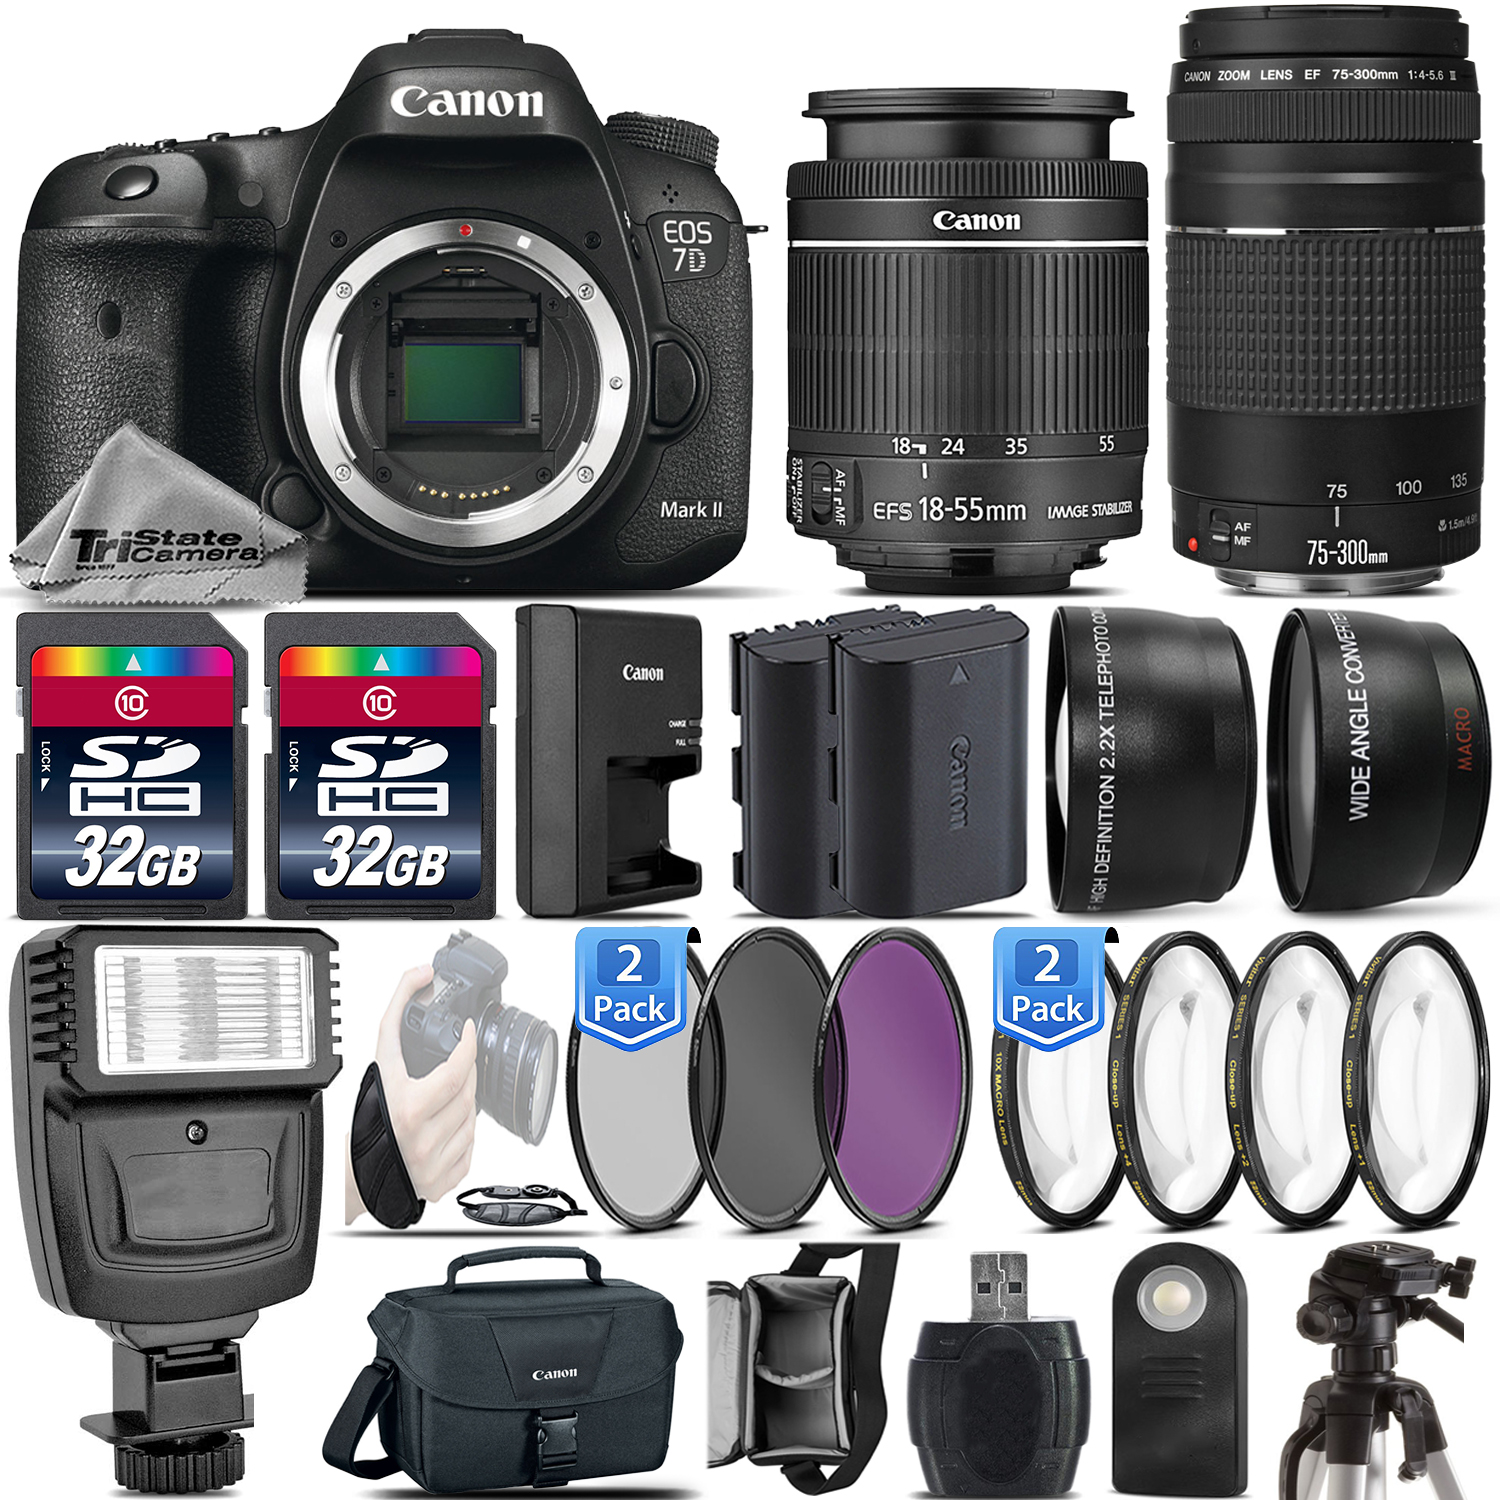 Canon EOS 7D Mark II DSLR Camera + Canon 18-55mm IS STM Lens + Canon 75-300mm Lens + Flash + 0.43X Wide Angle Lens + 2.2x Telephoto Lens + 64GB Storage